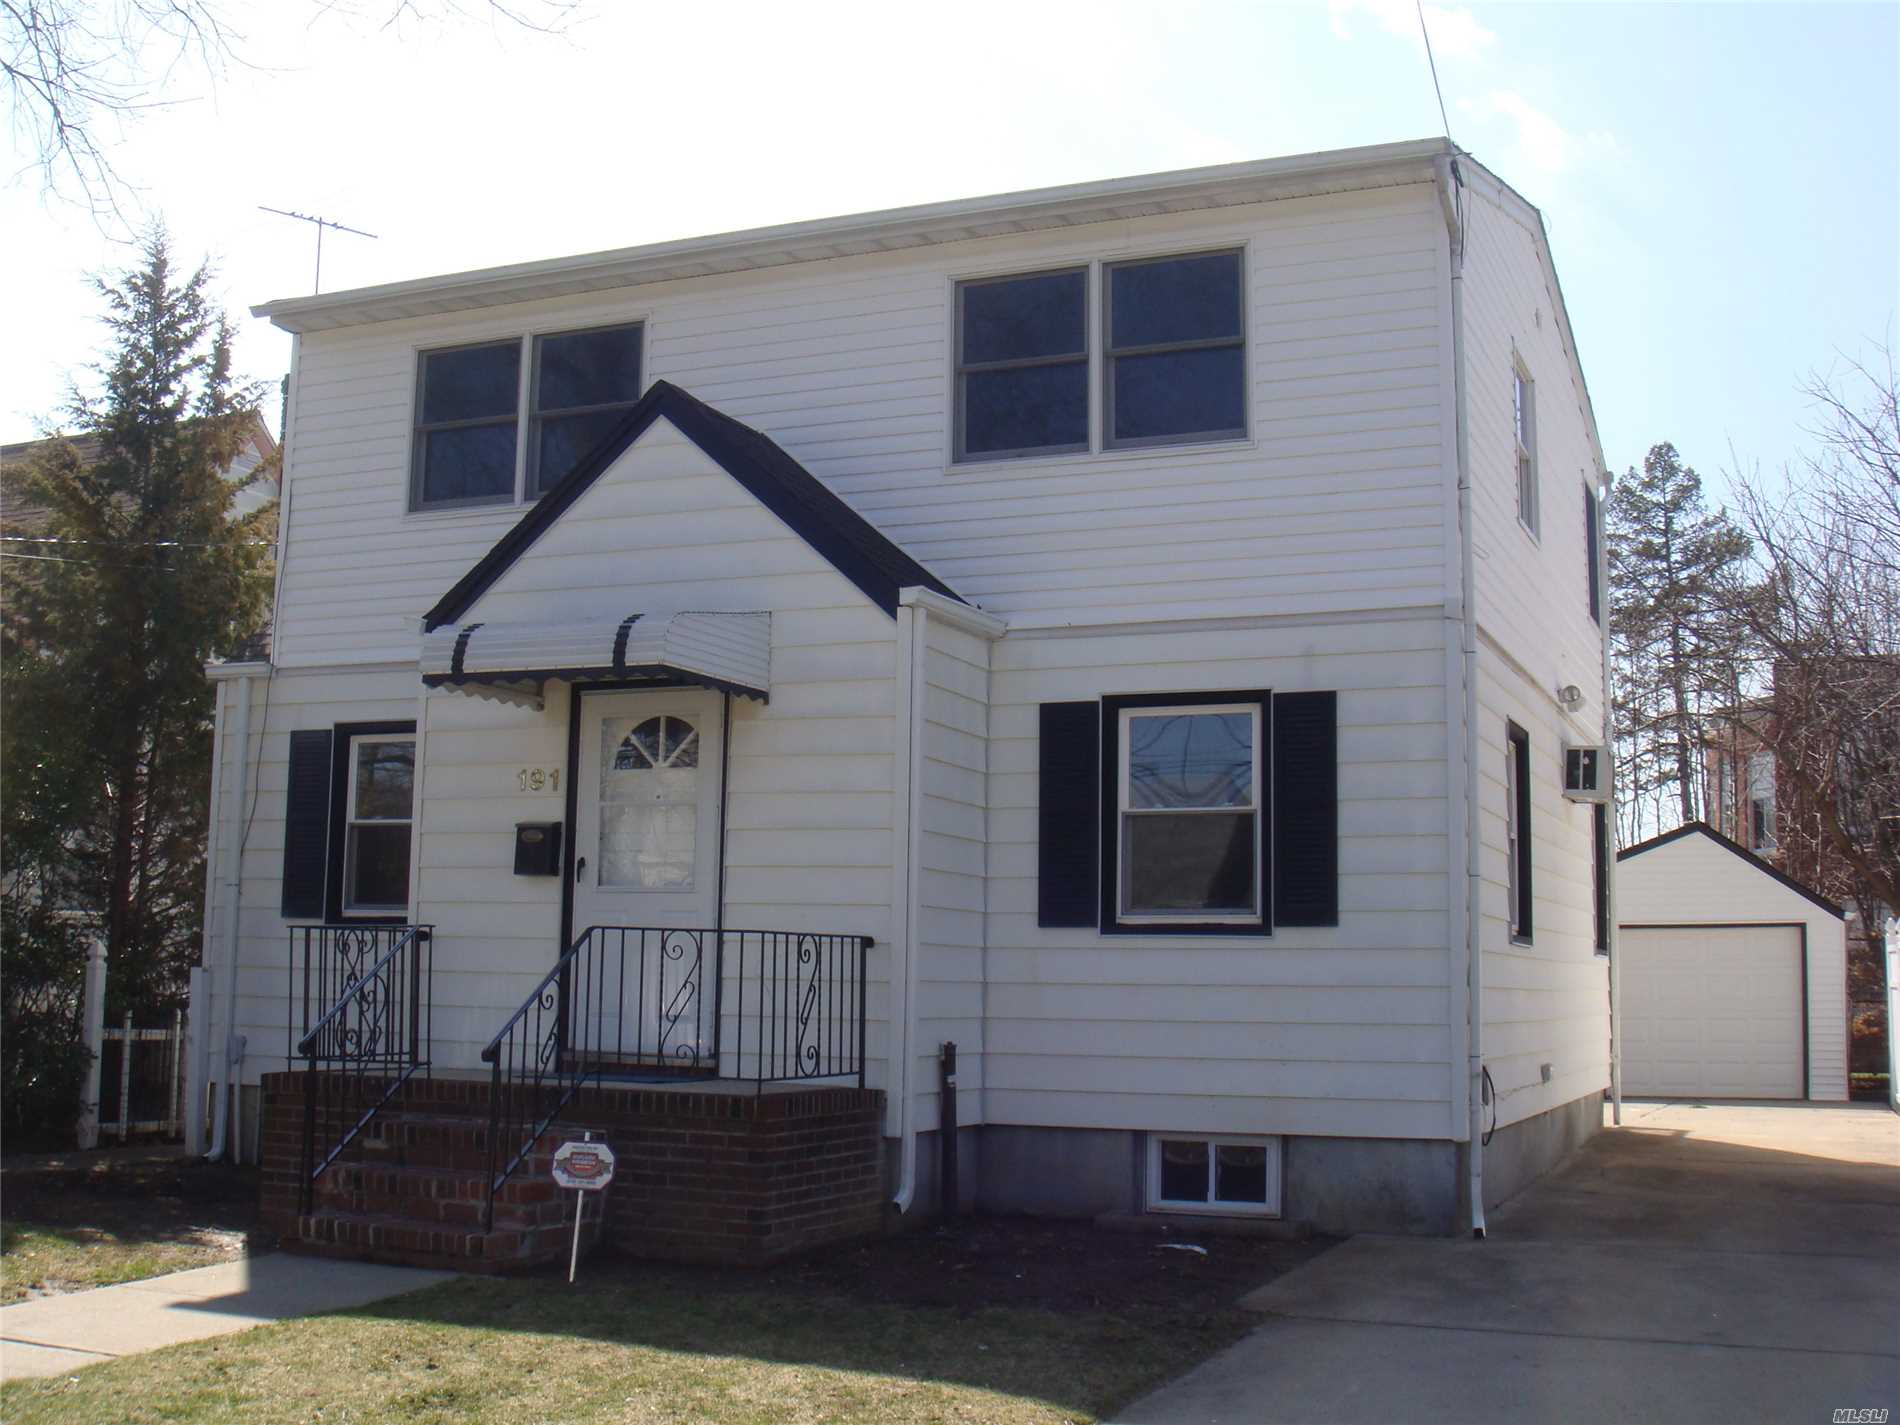 Move right in with room for Mom with proper permits possible Mother/Daughter. 3 Bedrooms, 2 Full baths, Living Room, Den, EIK, full finished basement. Taxes are being grieved.